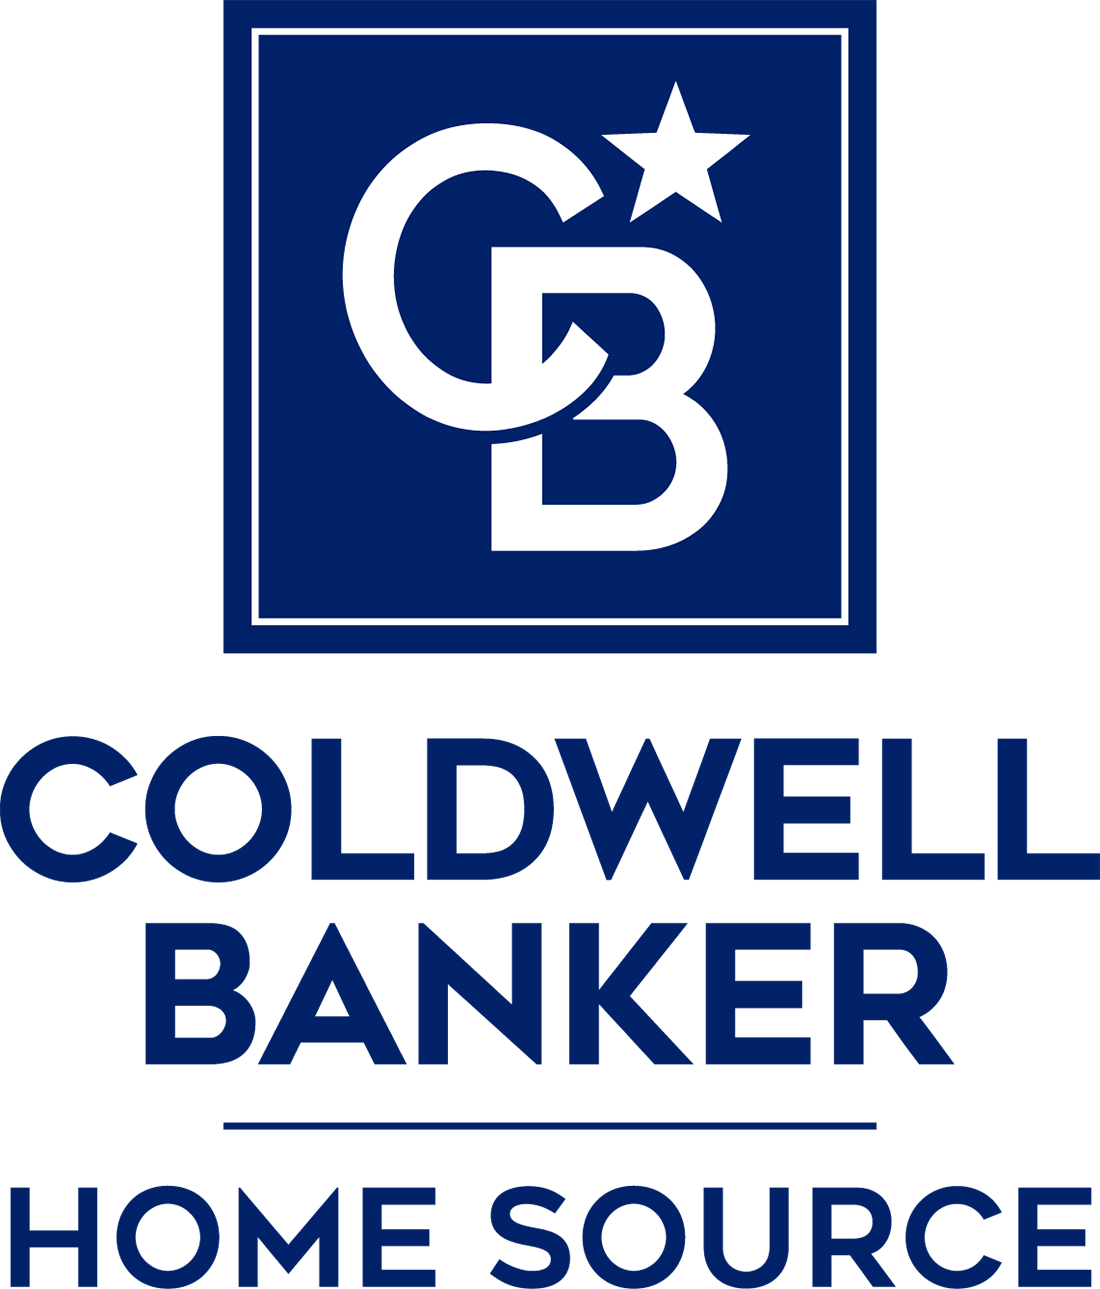 The Hart Group - Coldwell Banker Home Source Logo